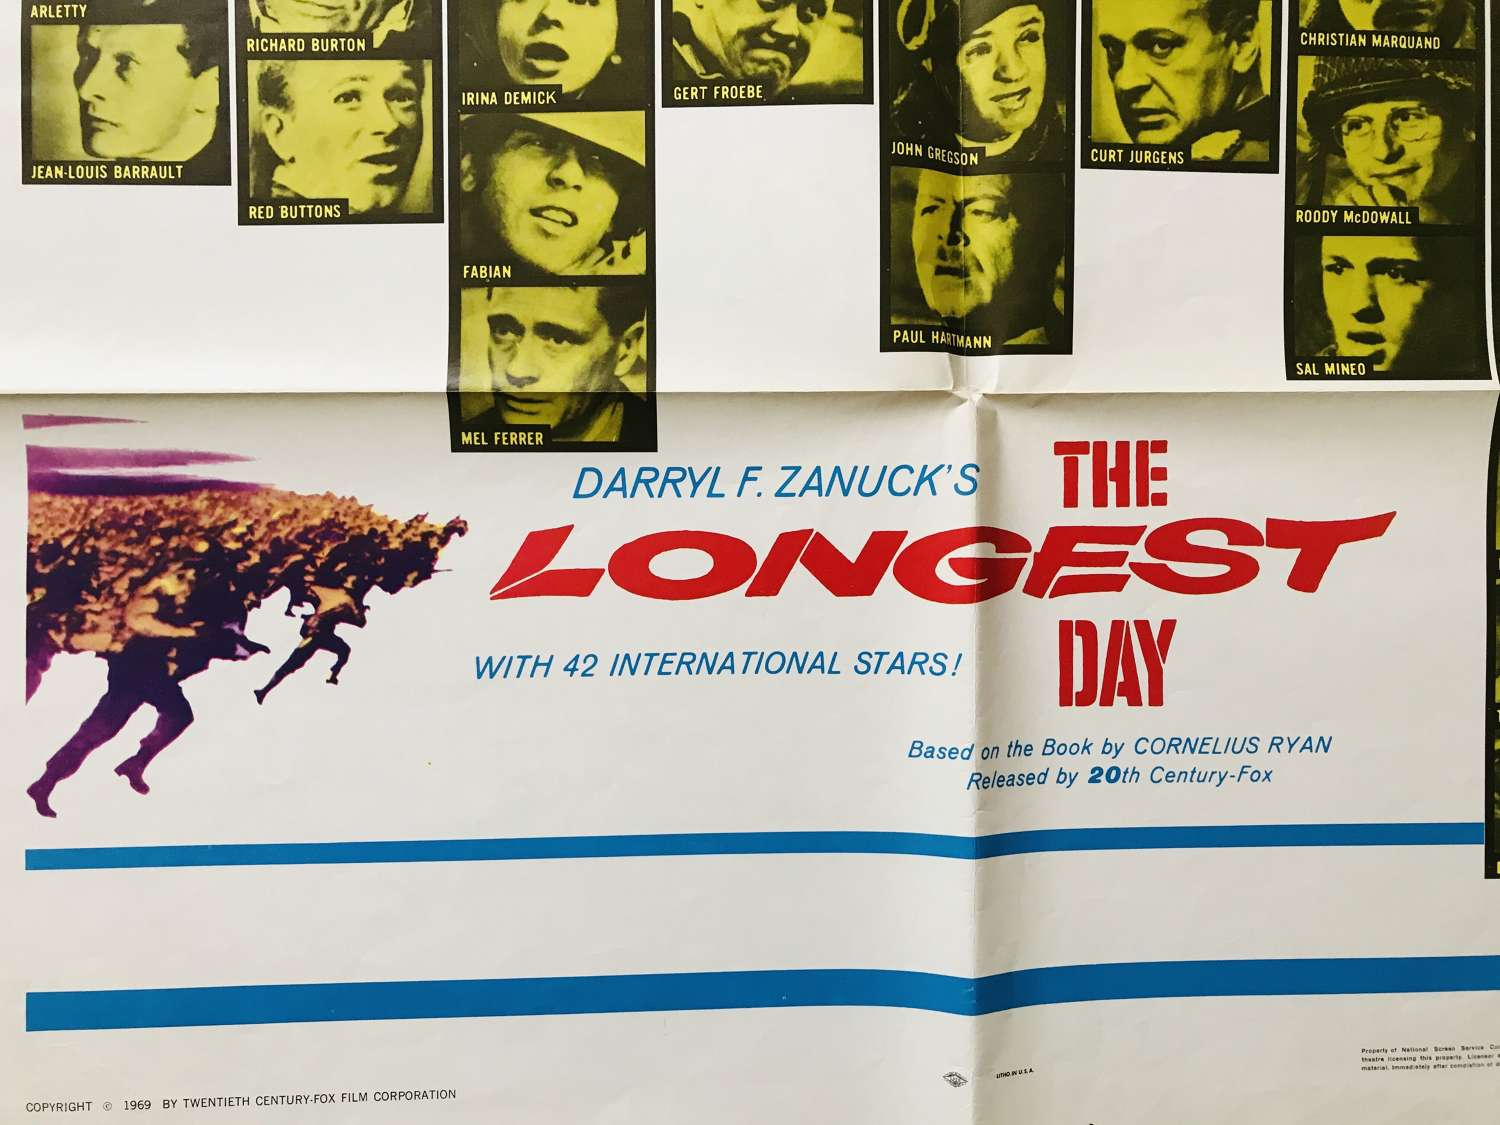 Longest Day film poster dated 1969